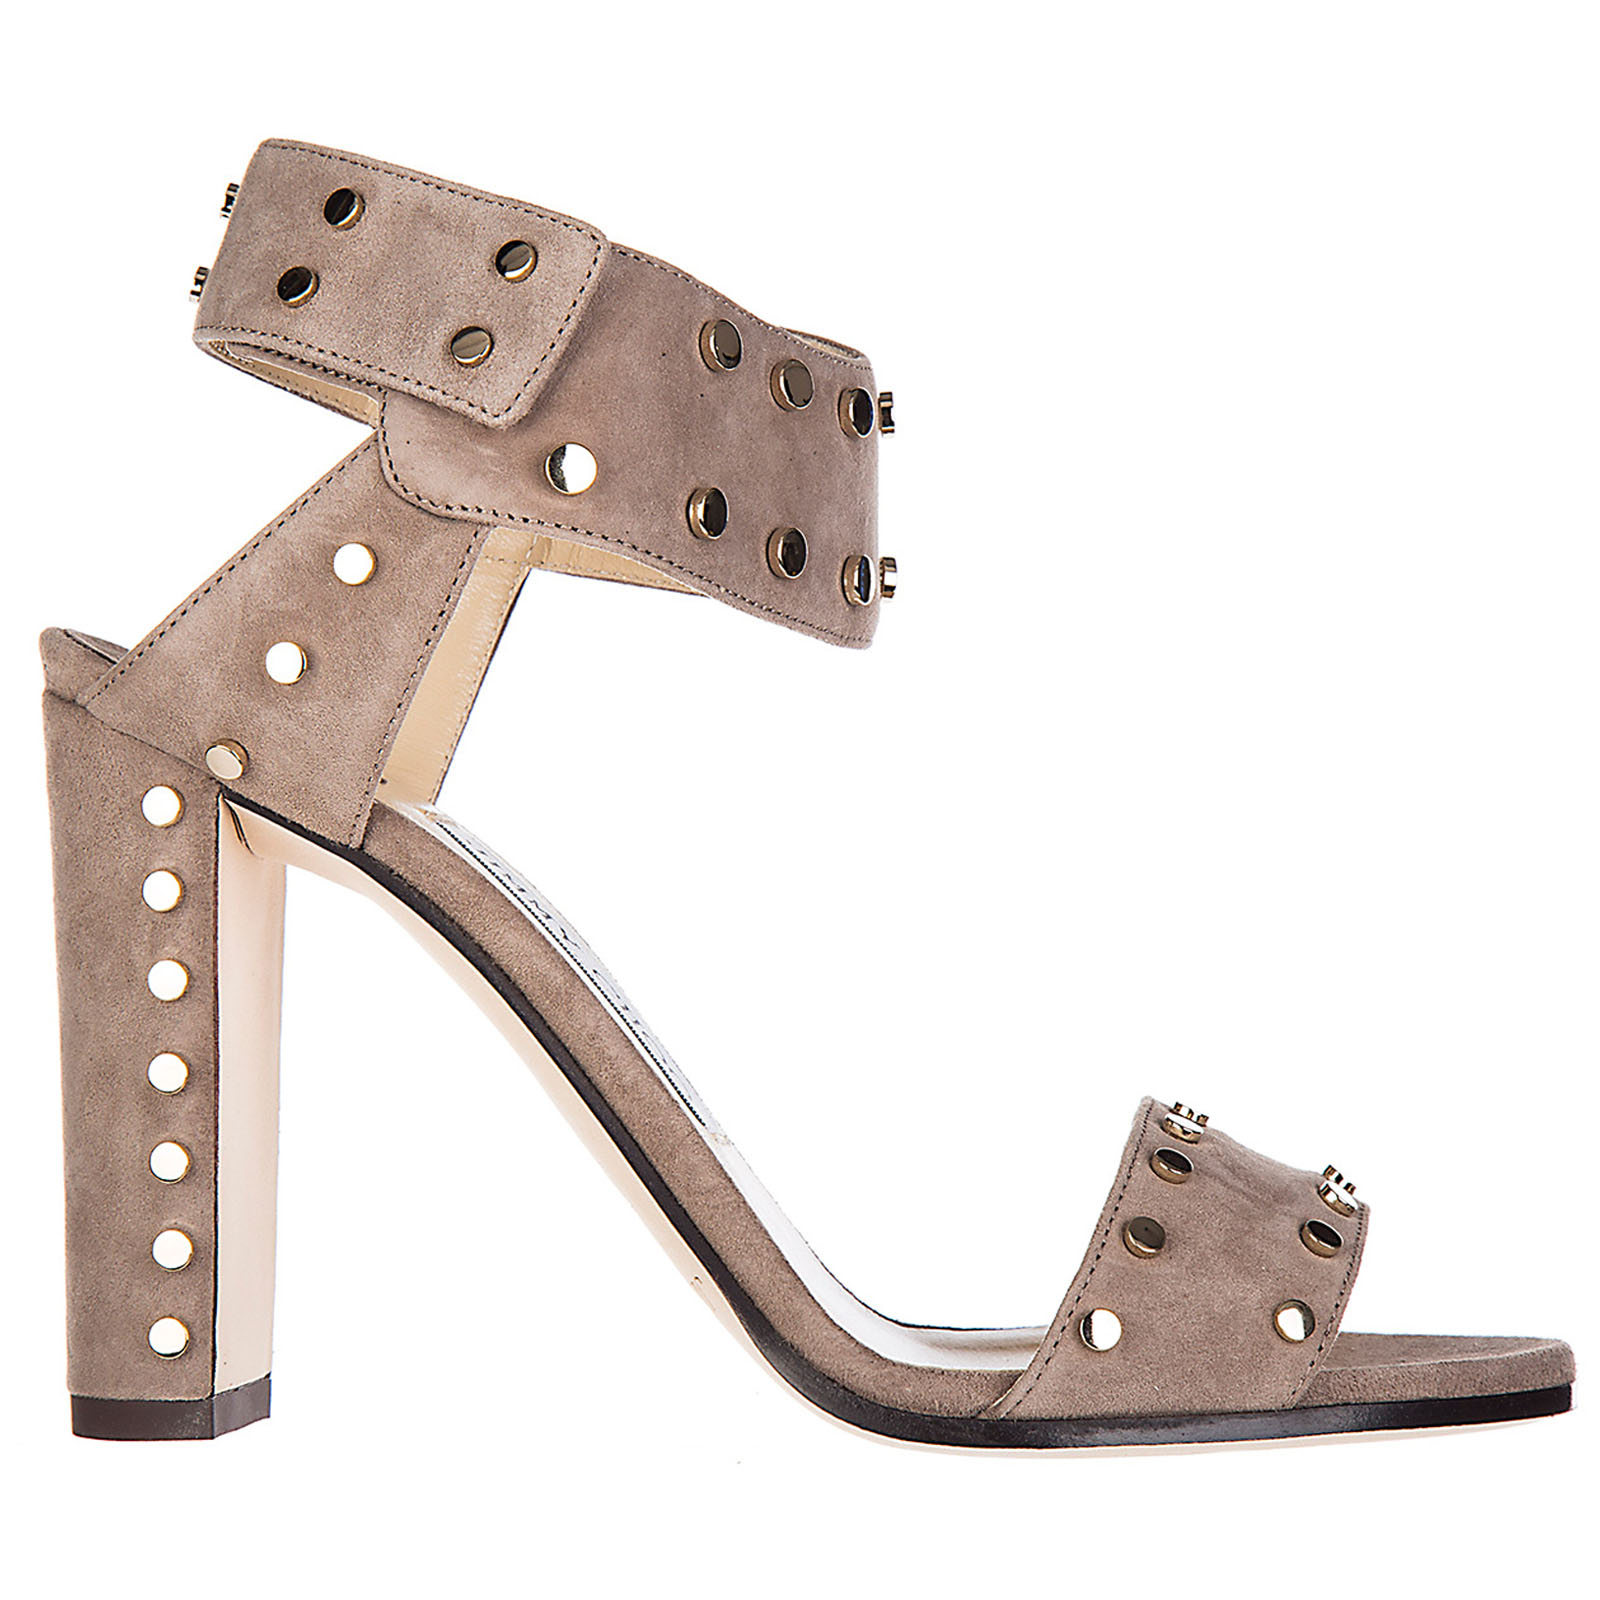 Women's suede heel sandals veto